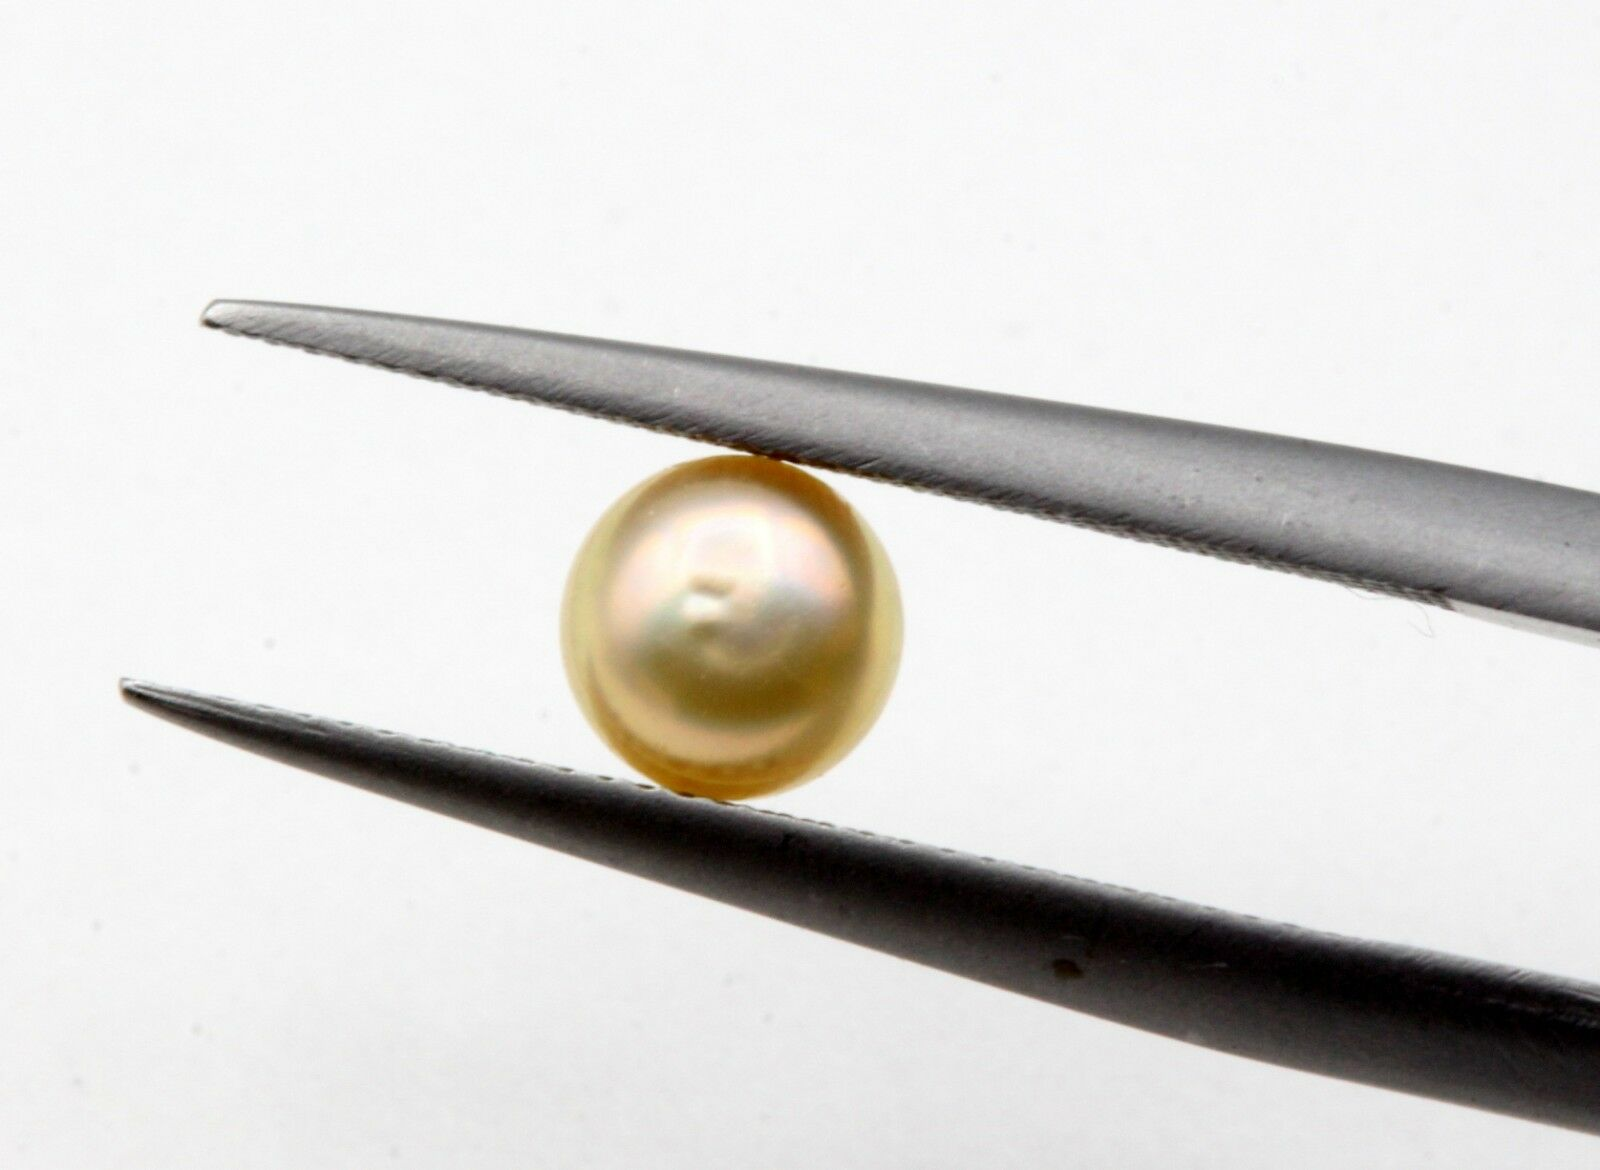 0.70 Ct Basra Pearl Loose Natural Pearl Cream Color Uneven Round Shape Certified